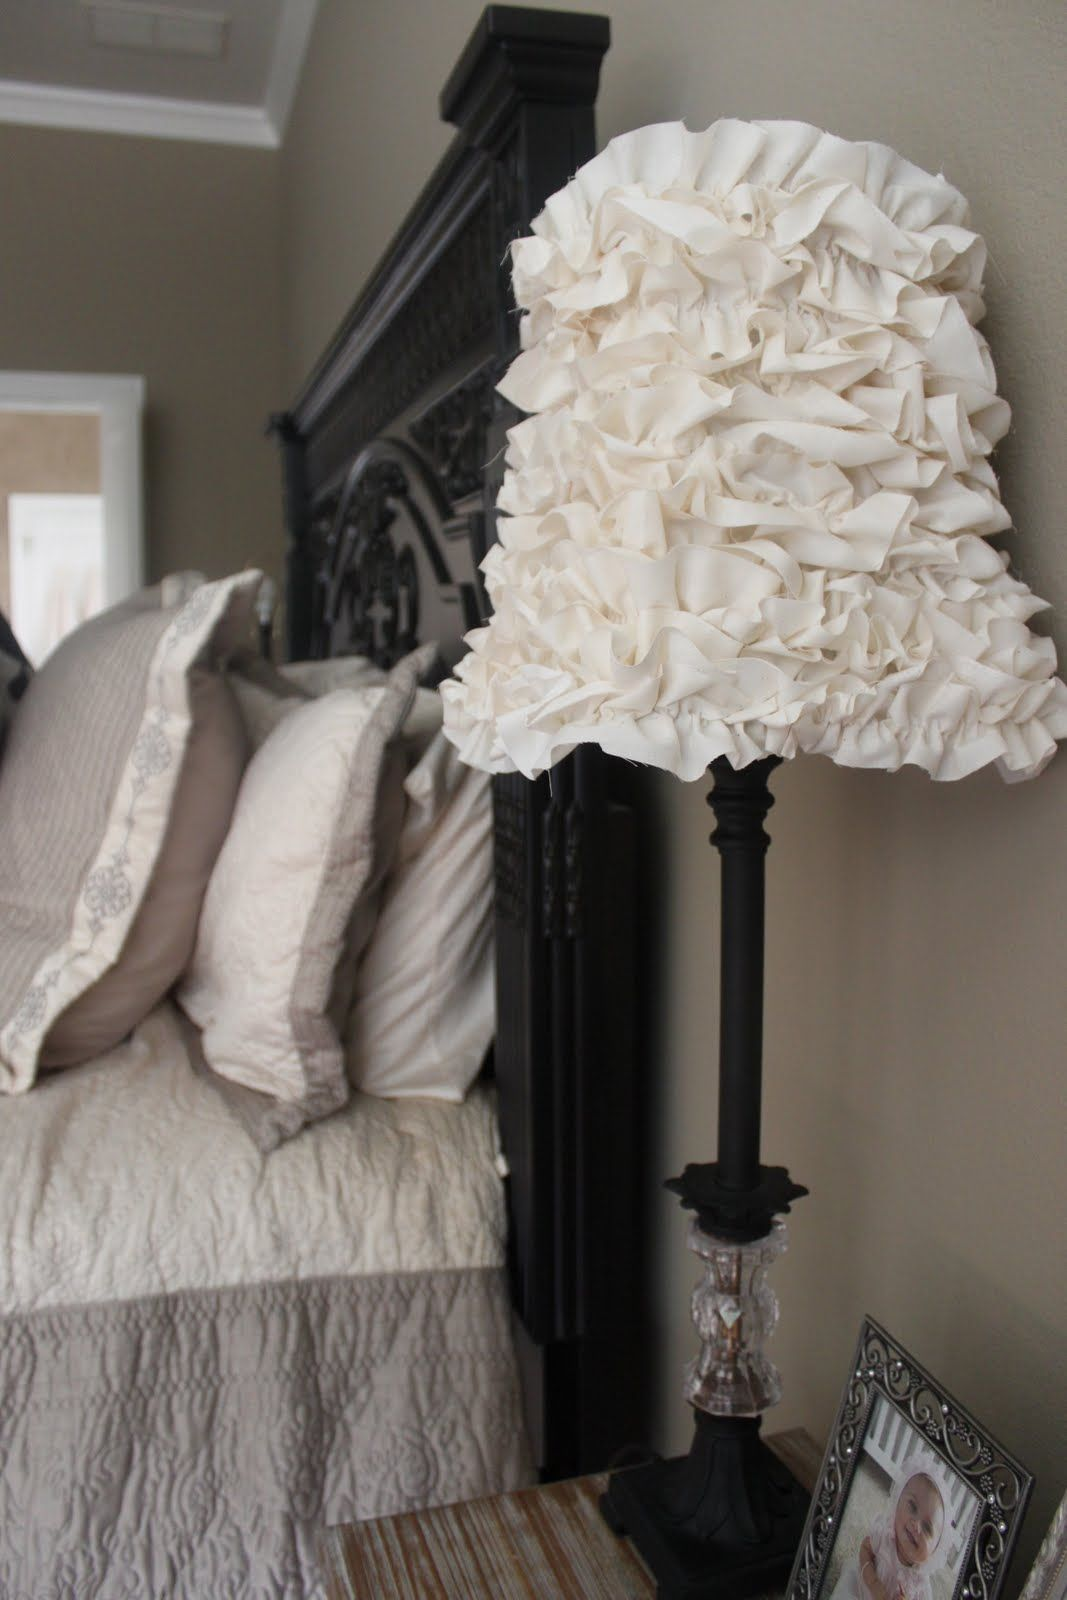 Crafty texas girls crafty how to ruffled lamp shade craft ideas crafty texas girls crafty how to ruffled lamp shade mozeypictures Gallery